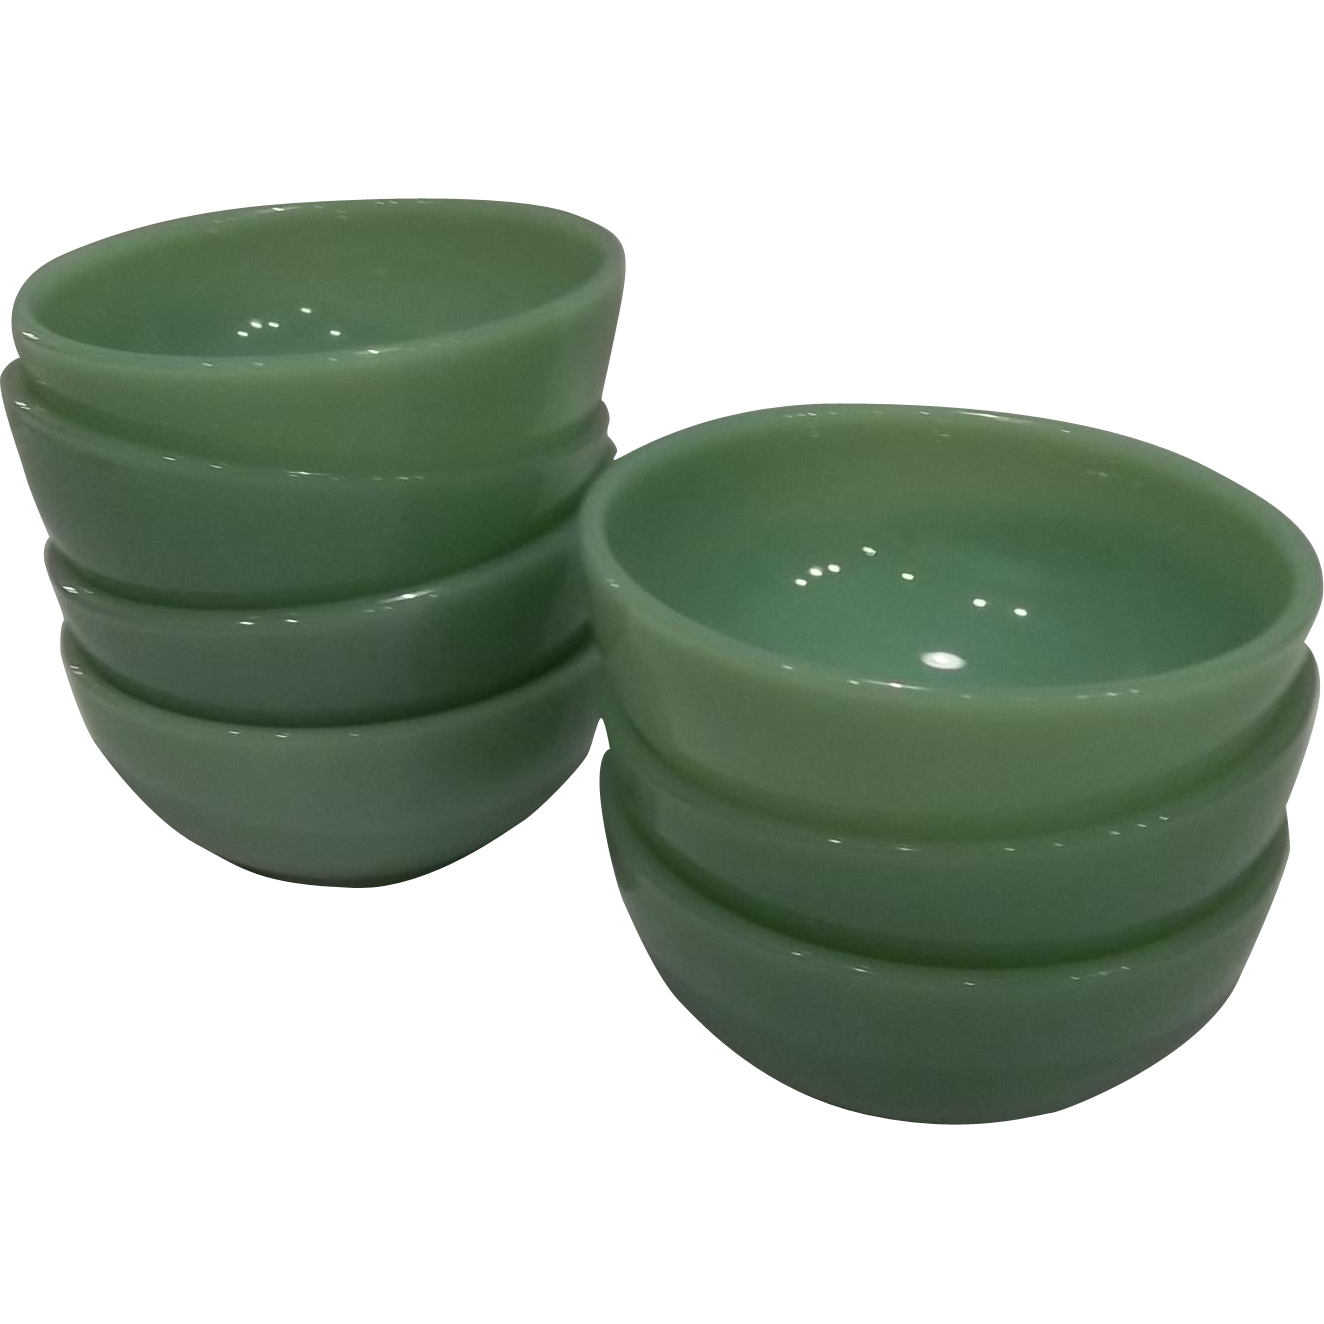 Fire King Jadeite Chili Bowls from jkqualityproducts on ...